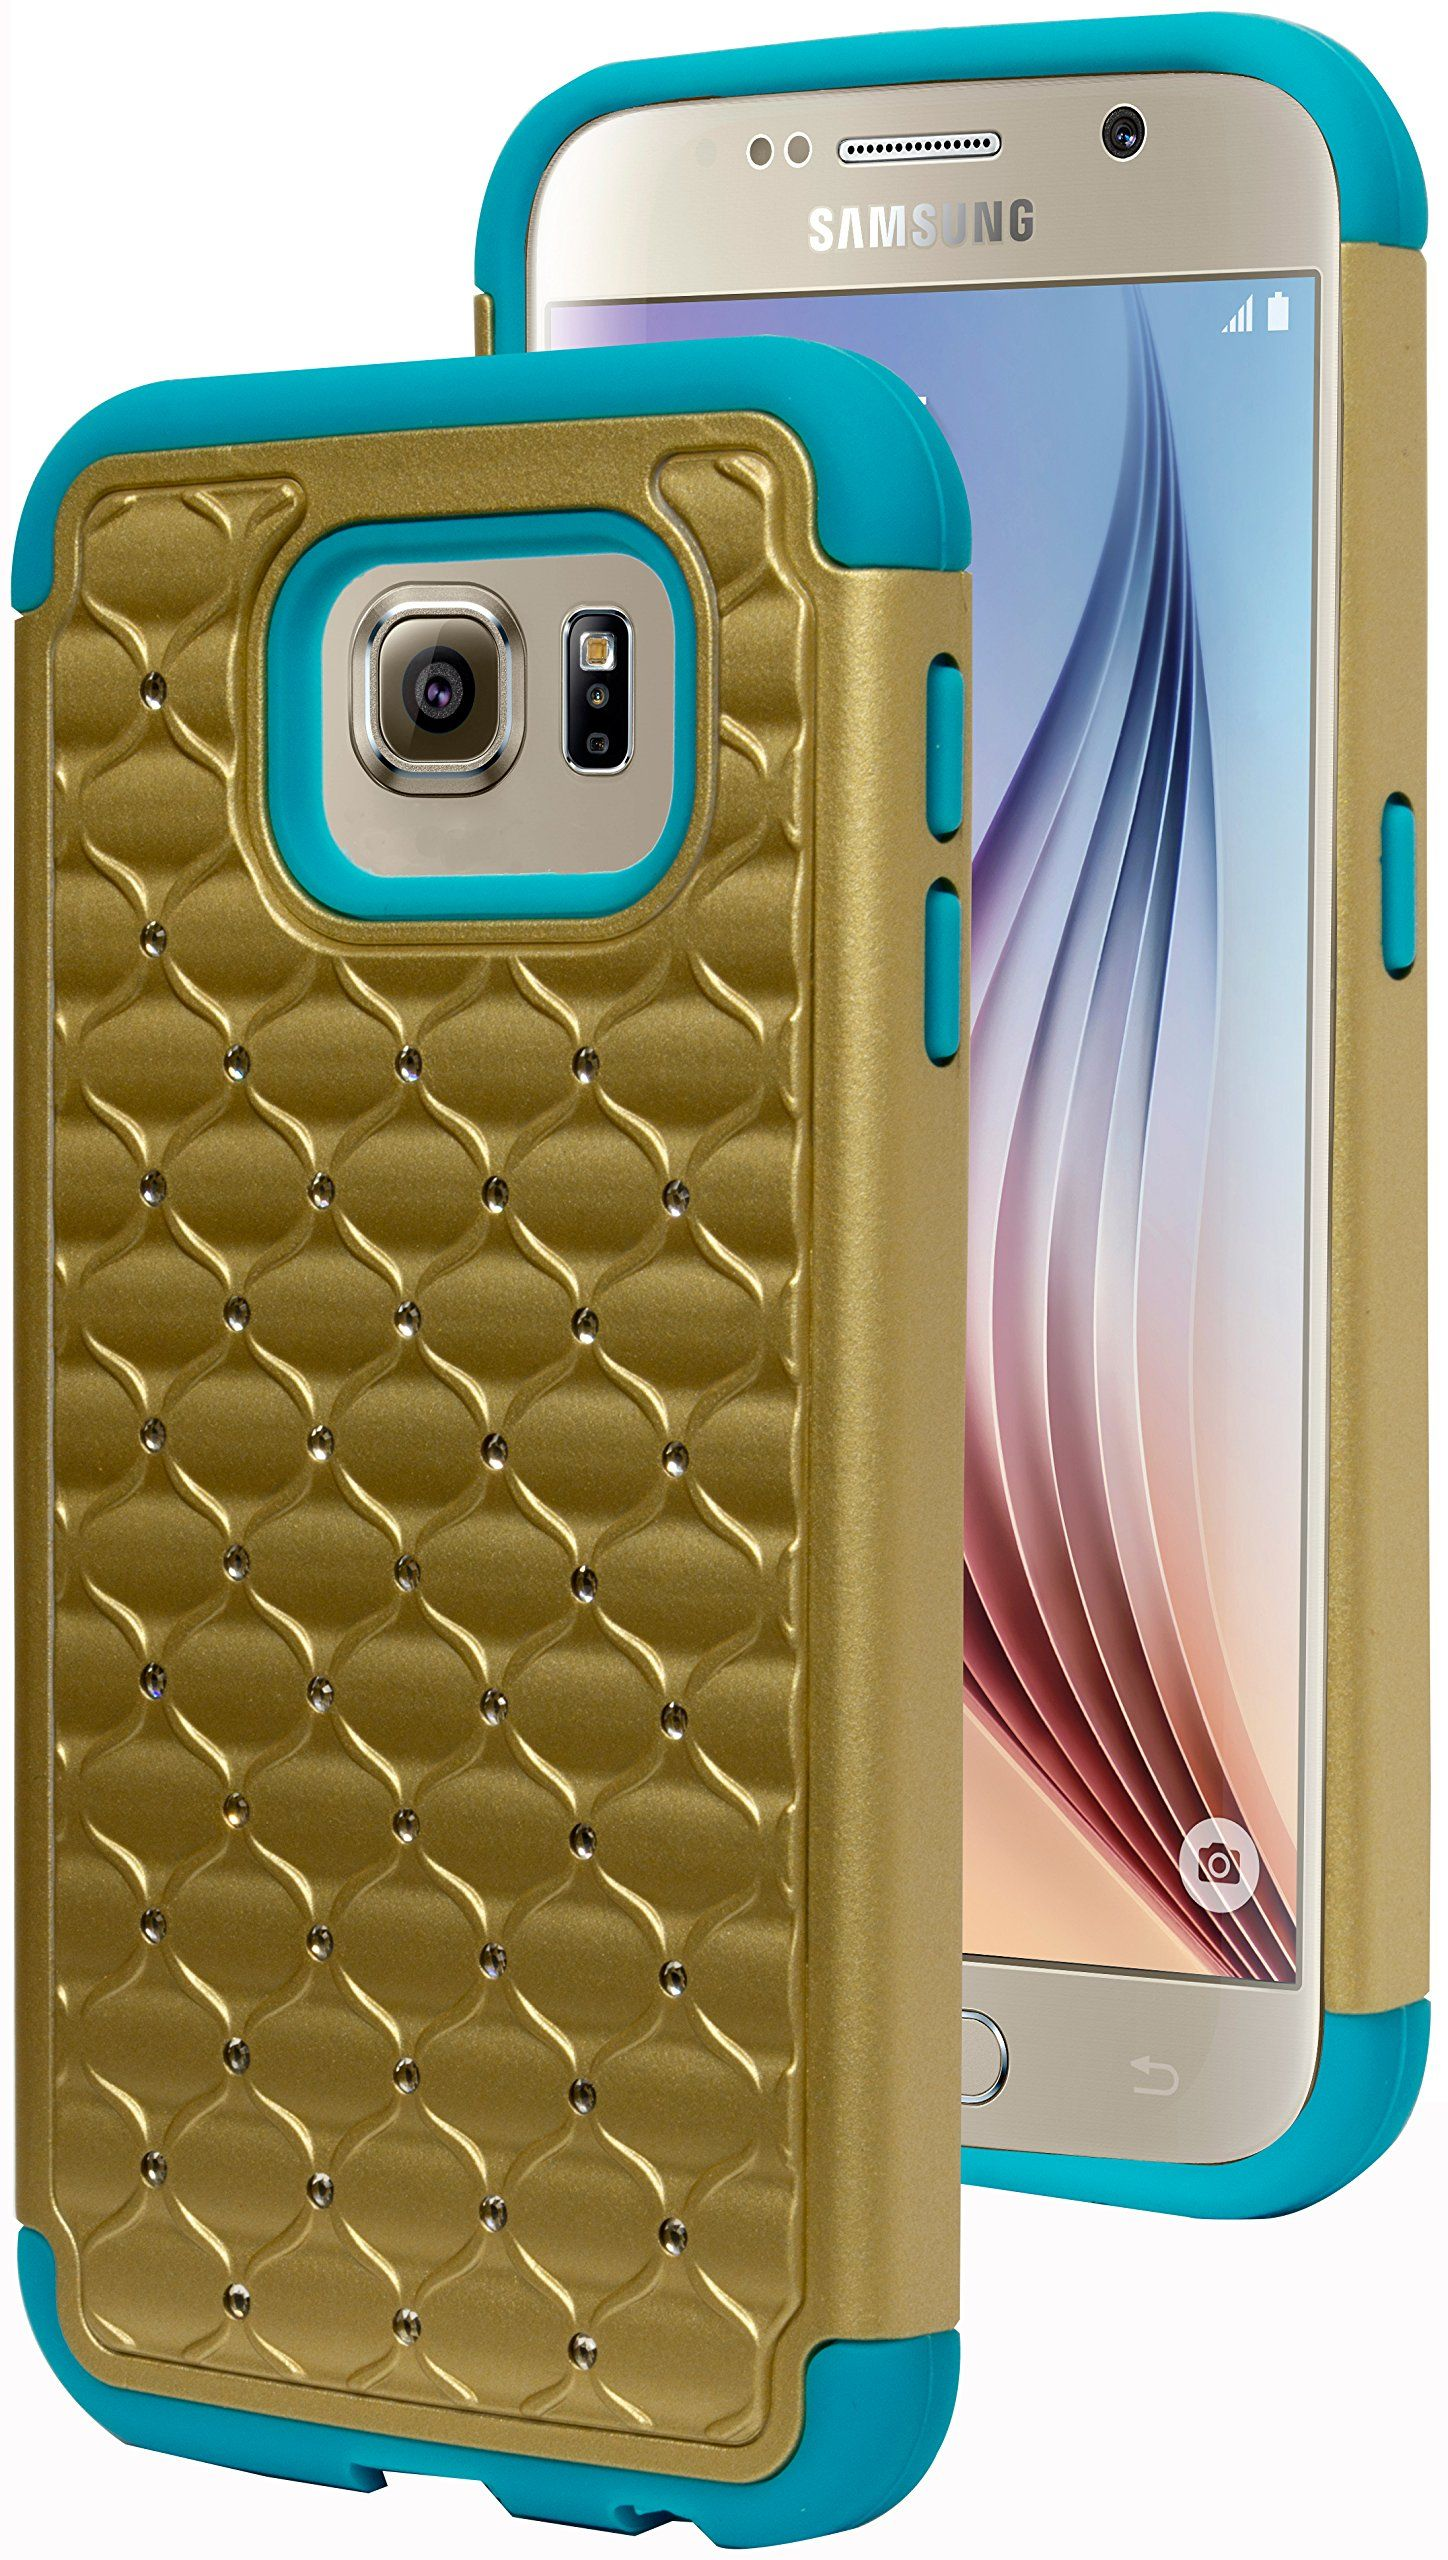 samsung s6 tablet cases